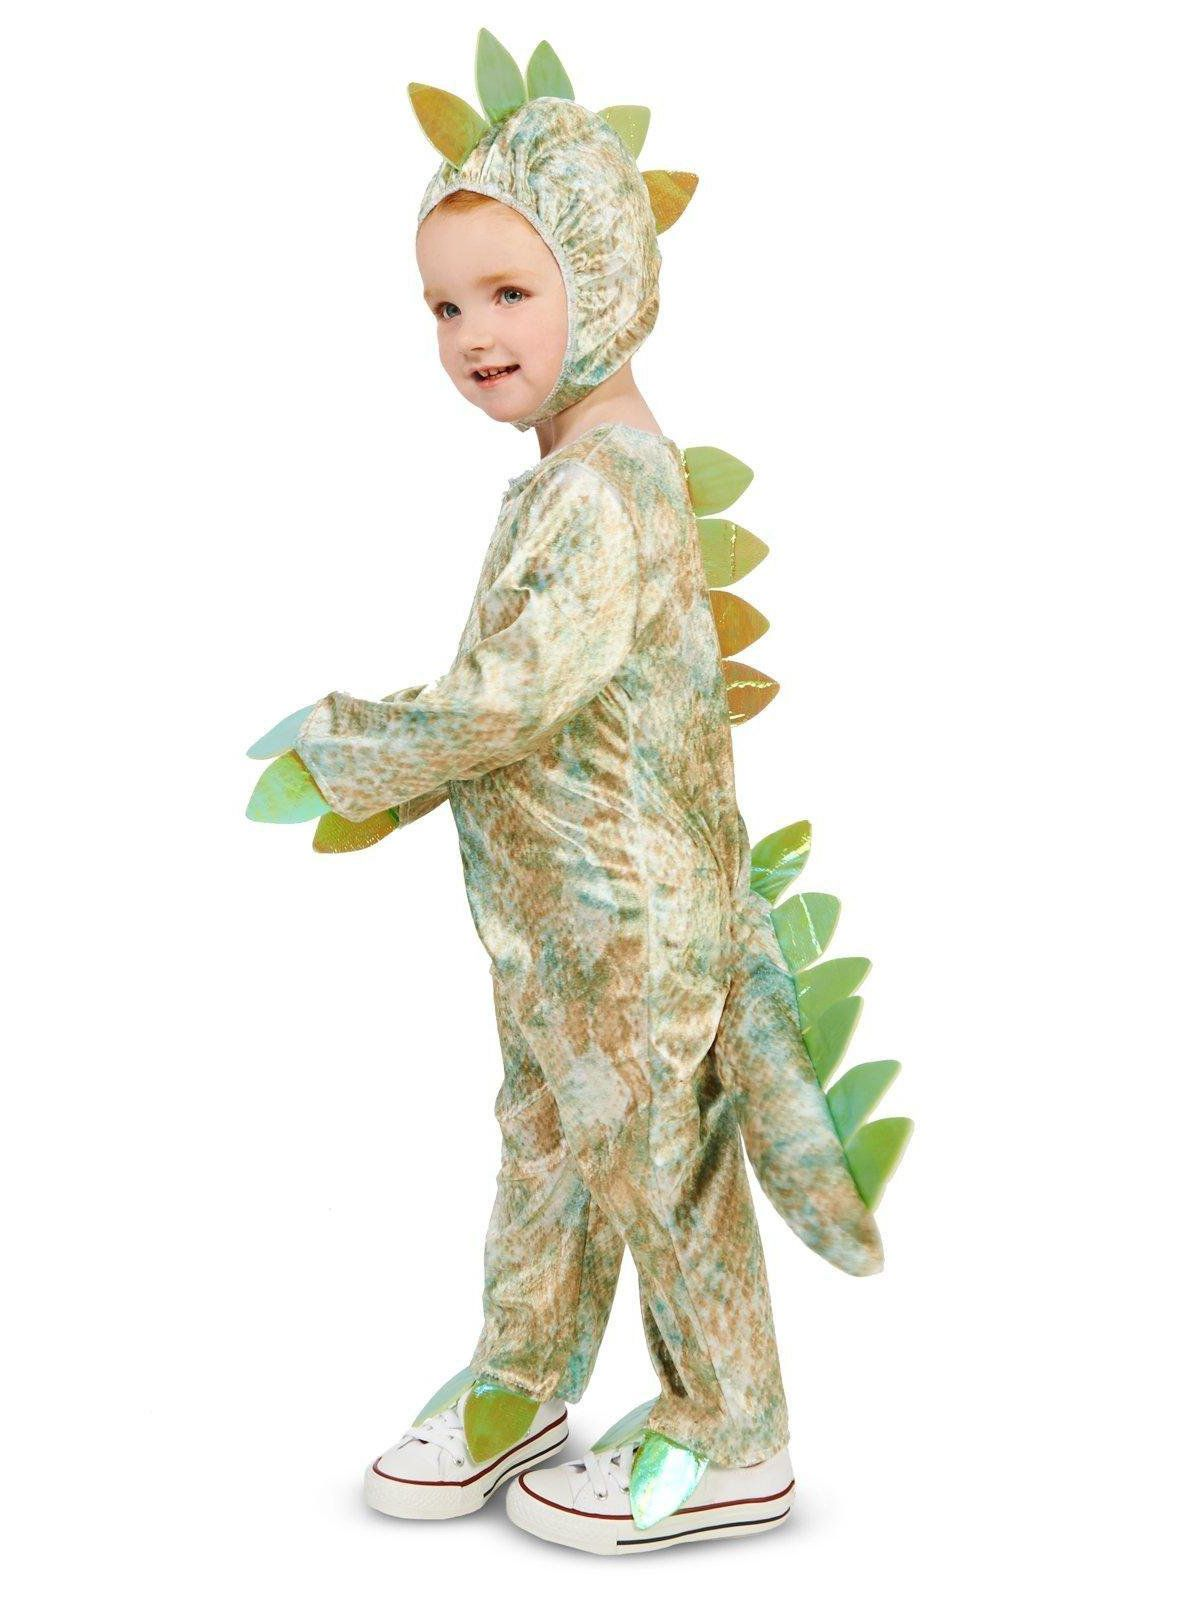 green t-rex dinosaur infant costume - baby/toddler costumes for 2018